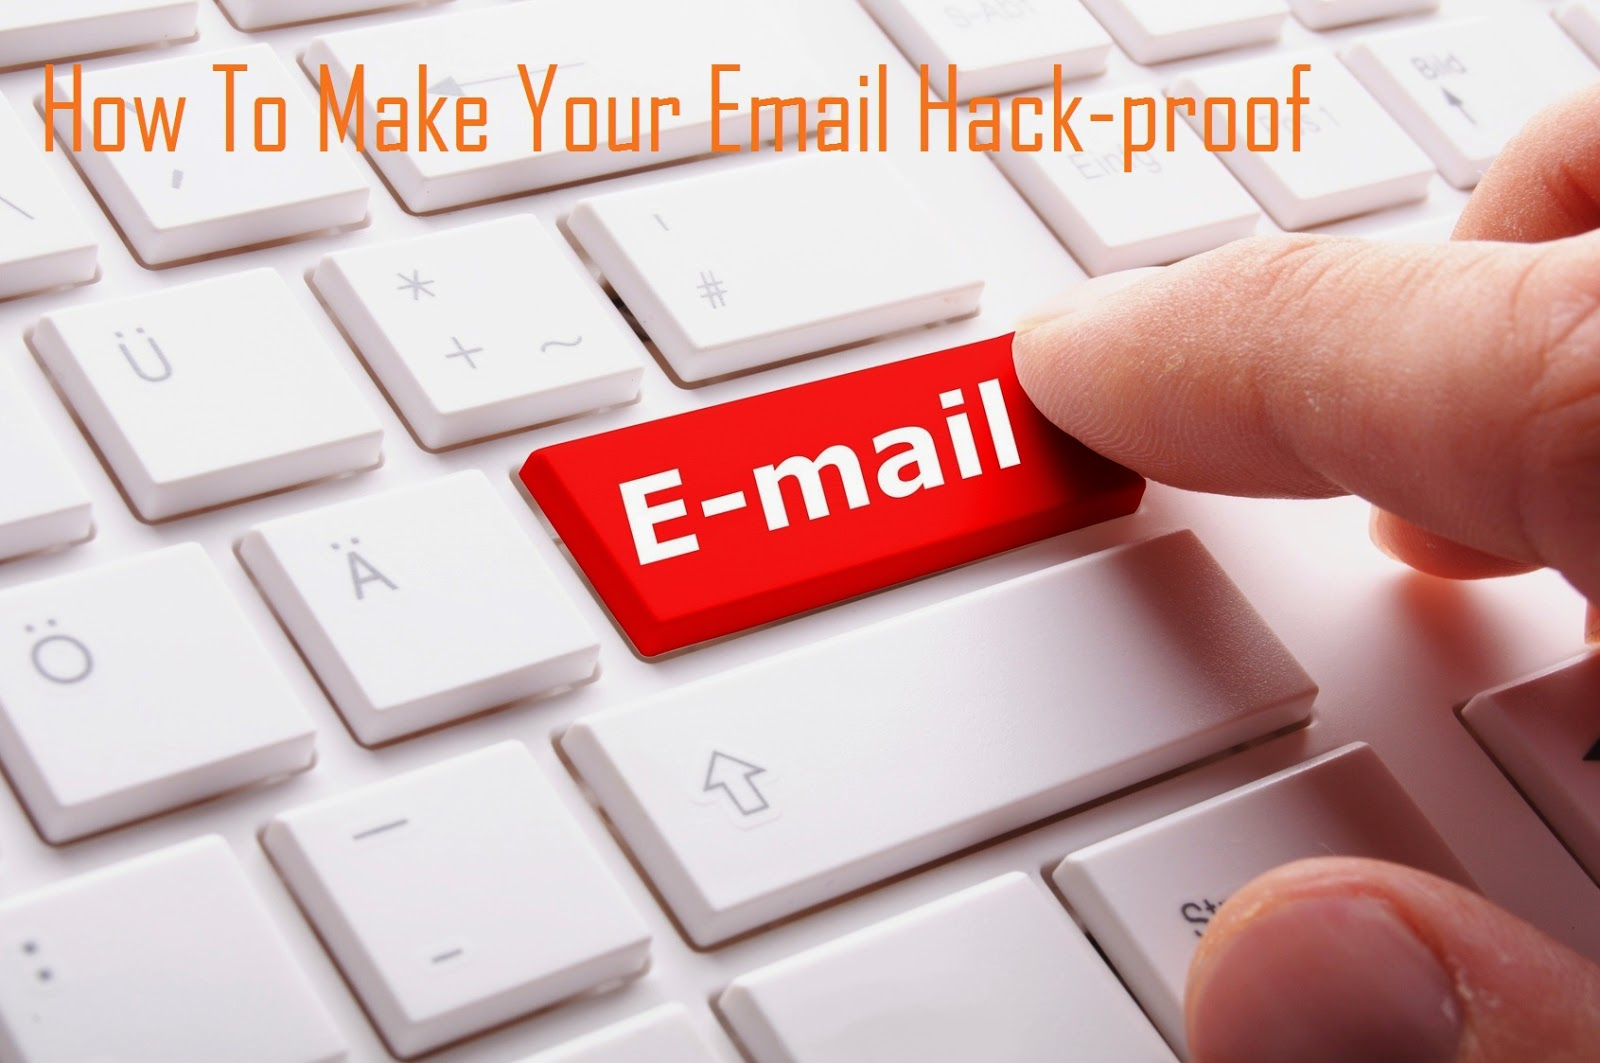 How To Make Your Email Hack-proof